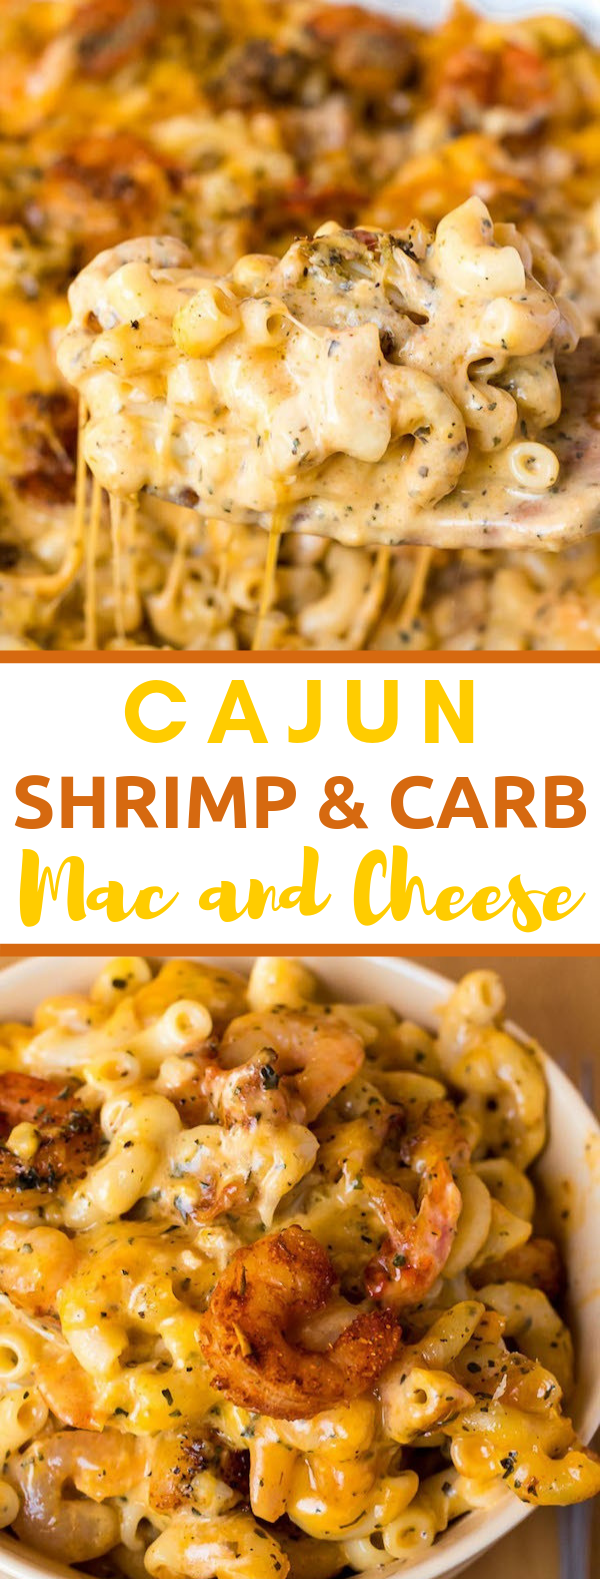 CAJUN SHRIMP AND CRAB MAC AND CHEESE #dinner #deliciousrecipe